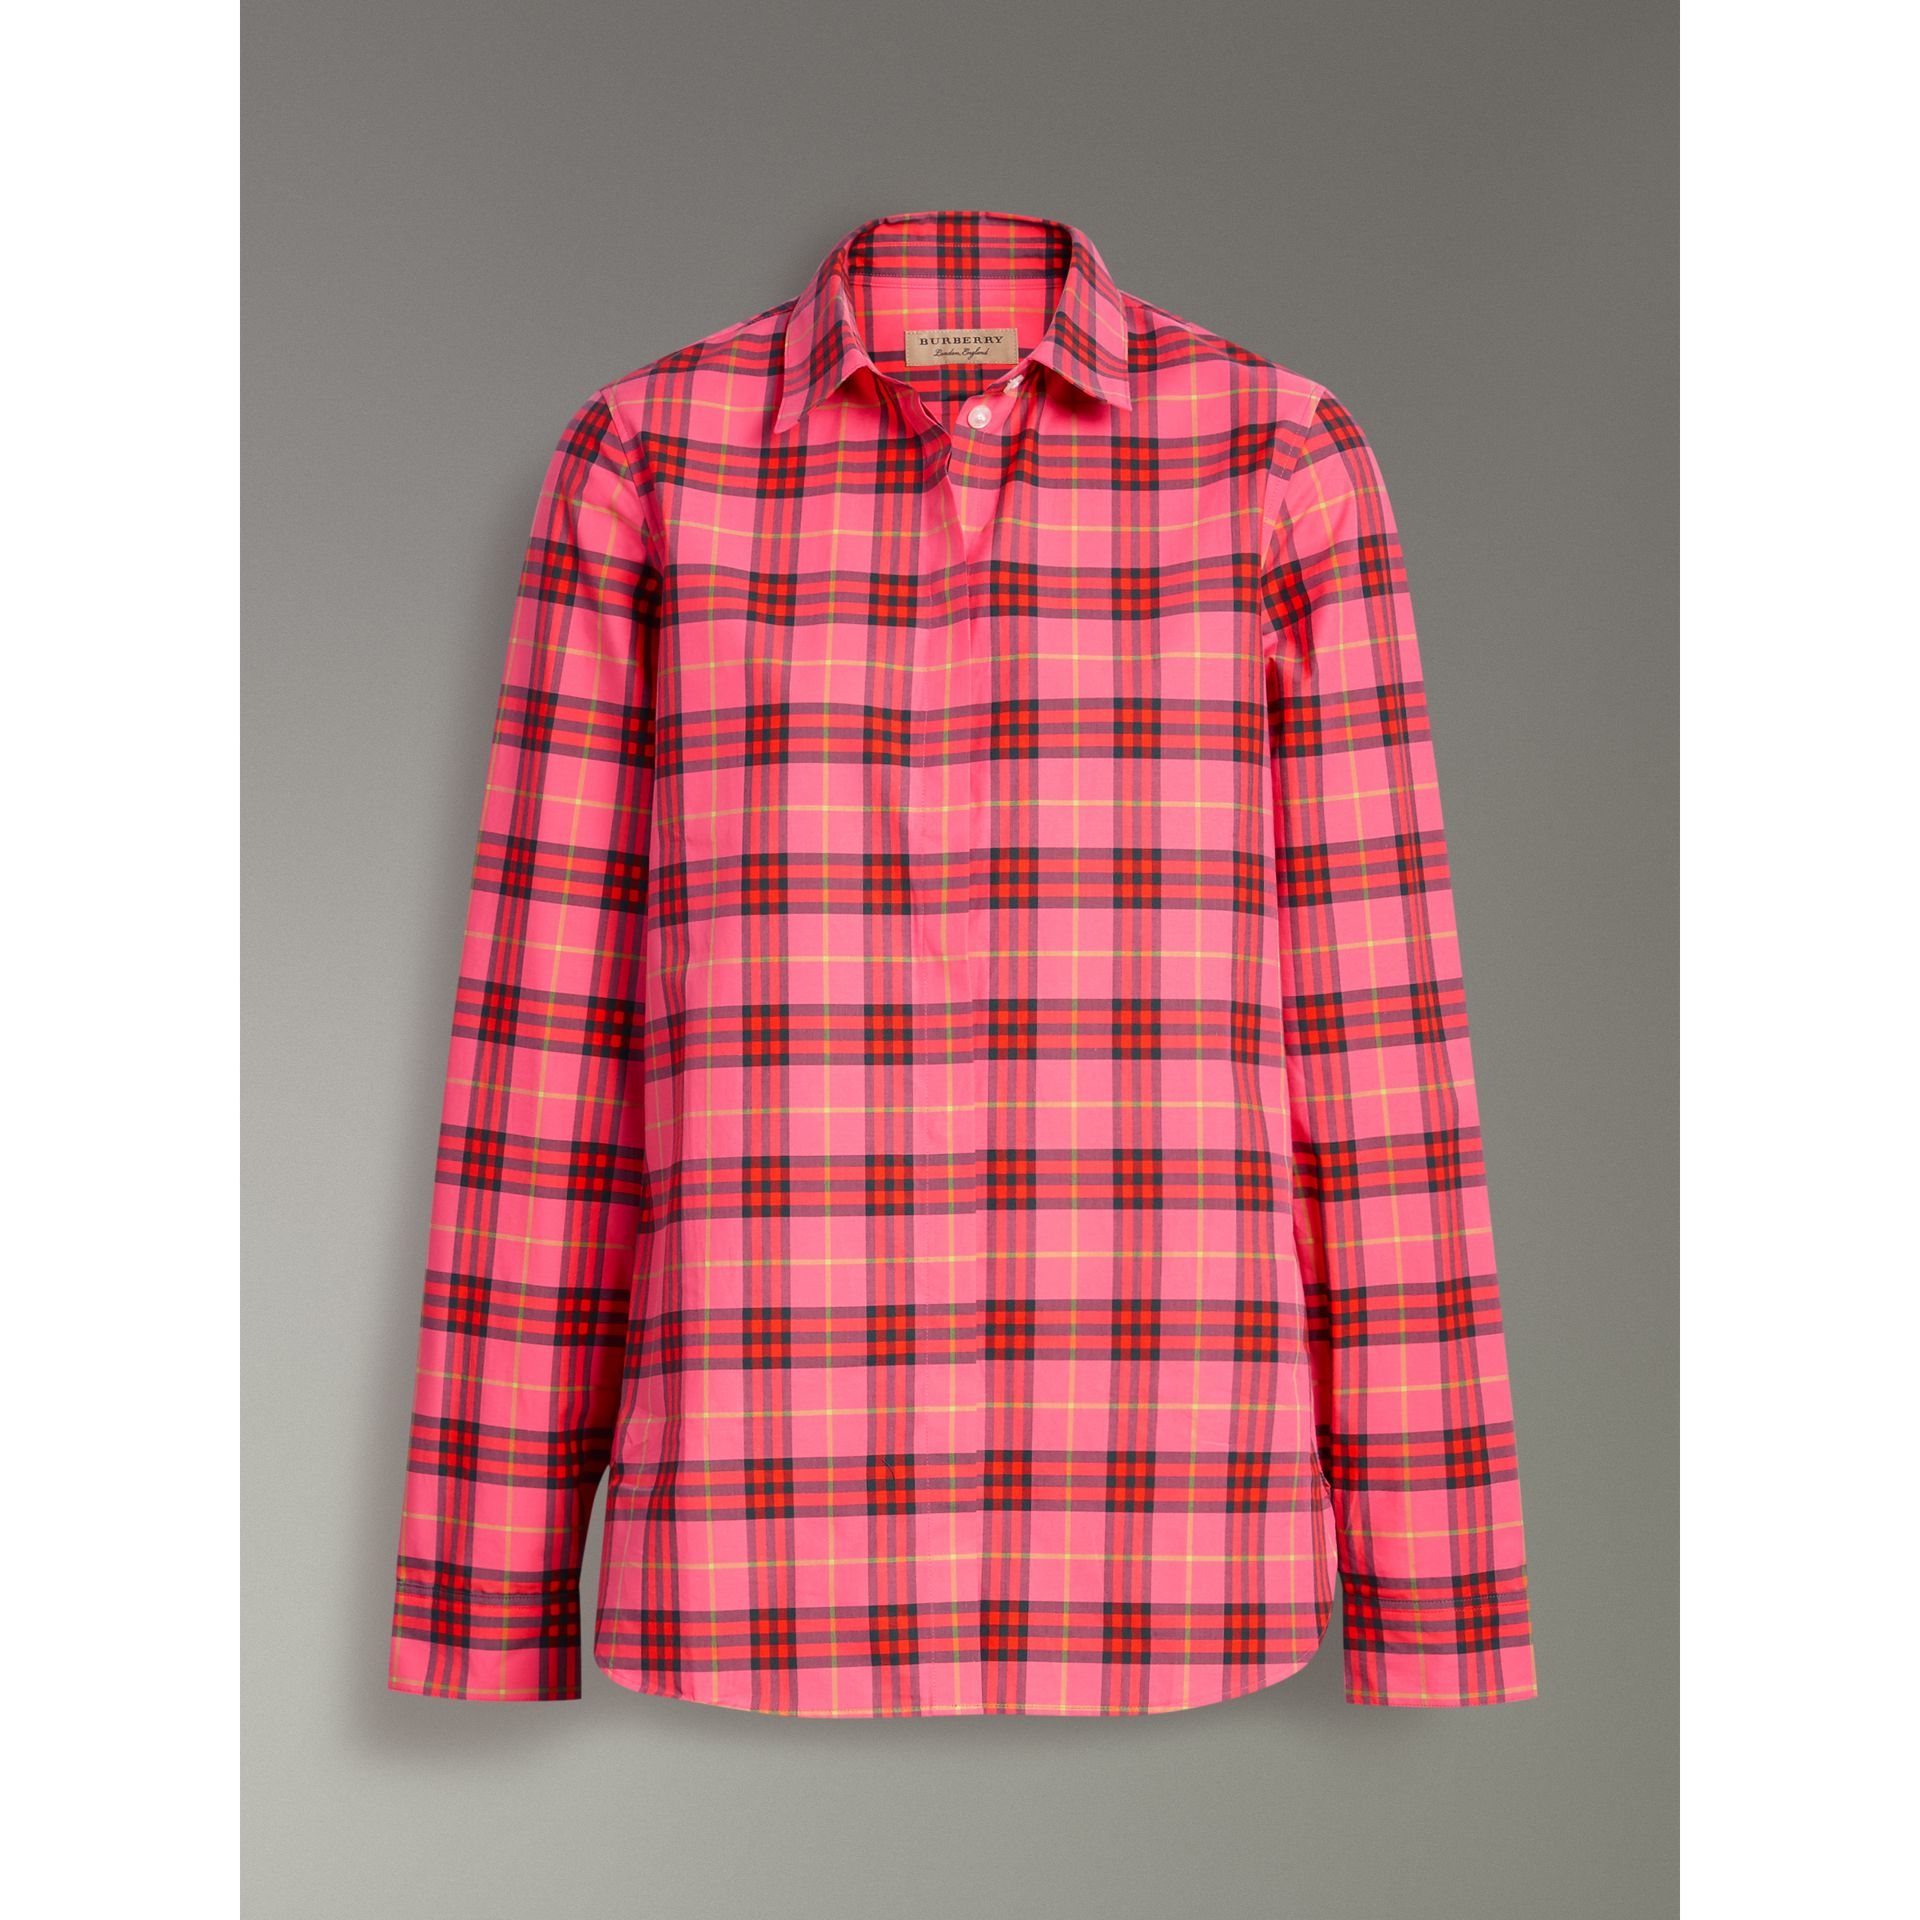 Check Cotton Shirt in Coral Red - Women | Burberry Singapore - gallery image 3